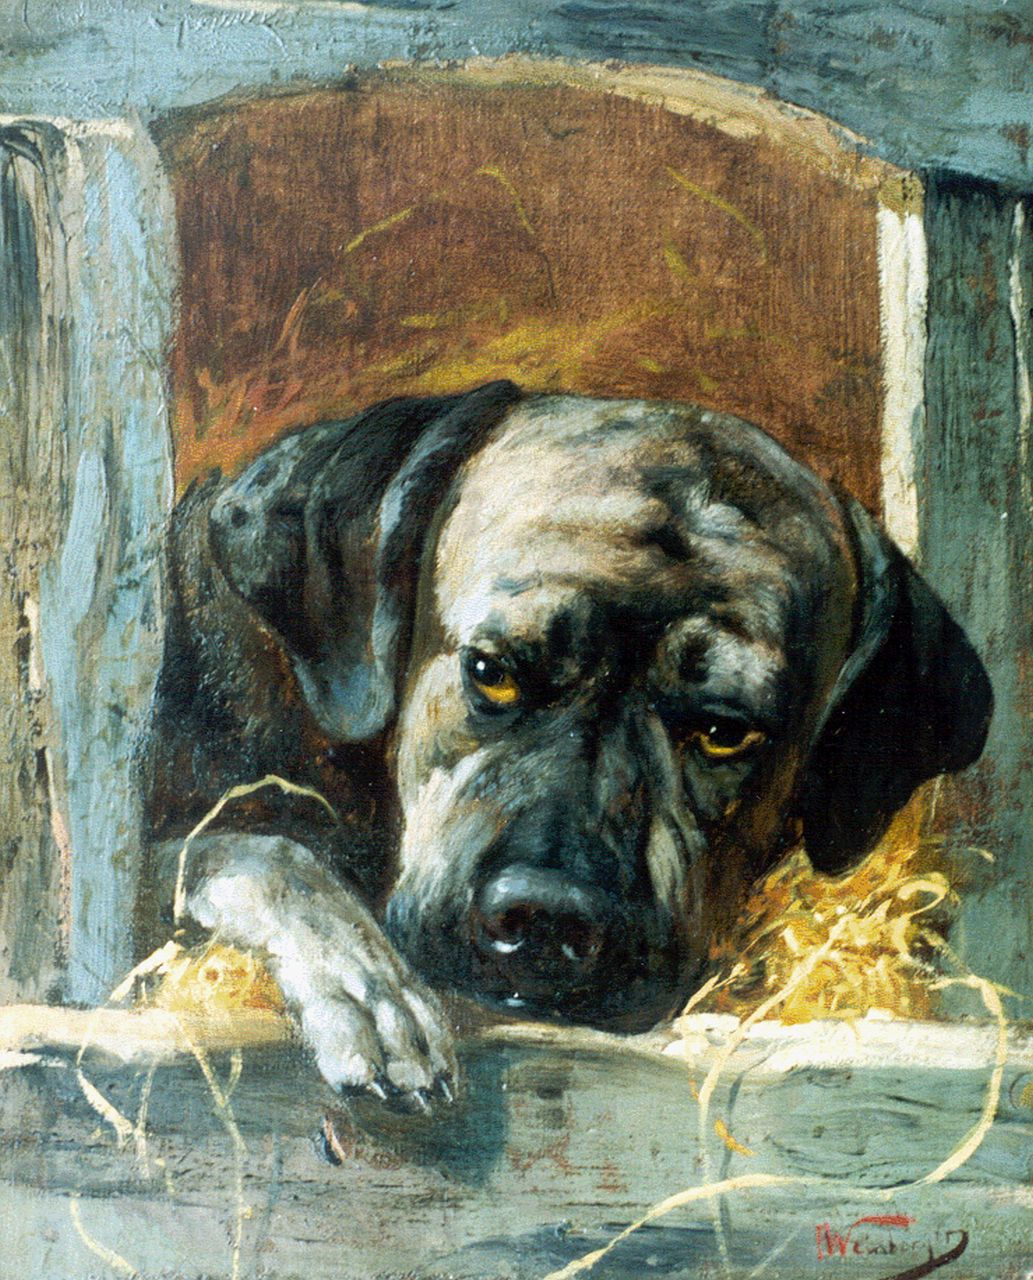 Anton Weinberger | The watchdog, oil on canvas, 32.2 x 26.7 cm, signed l.r.